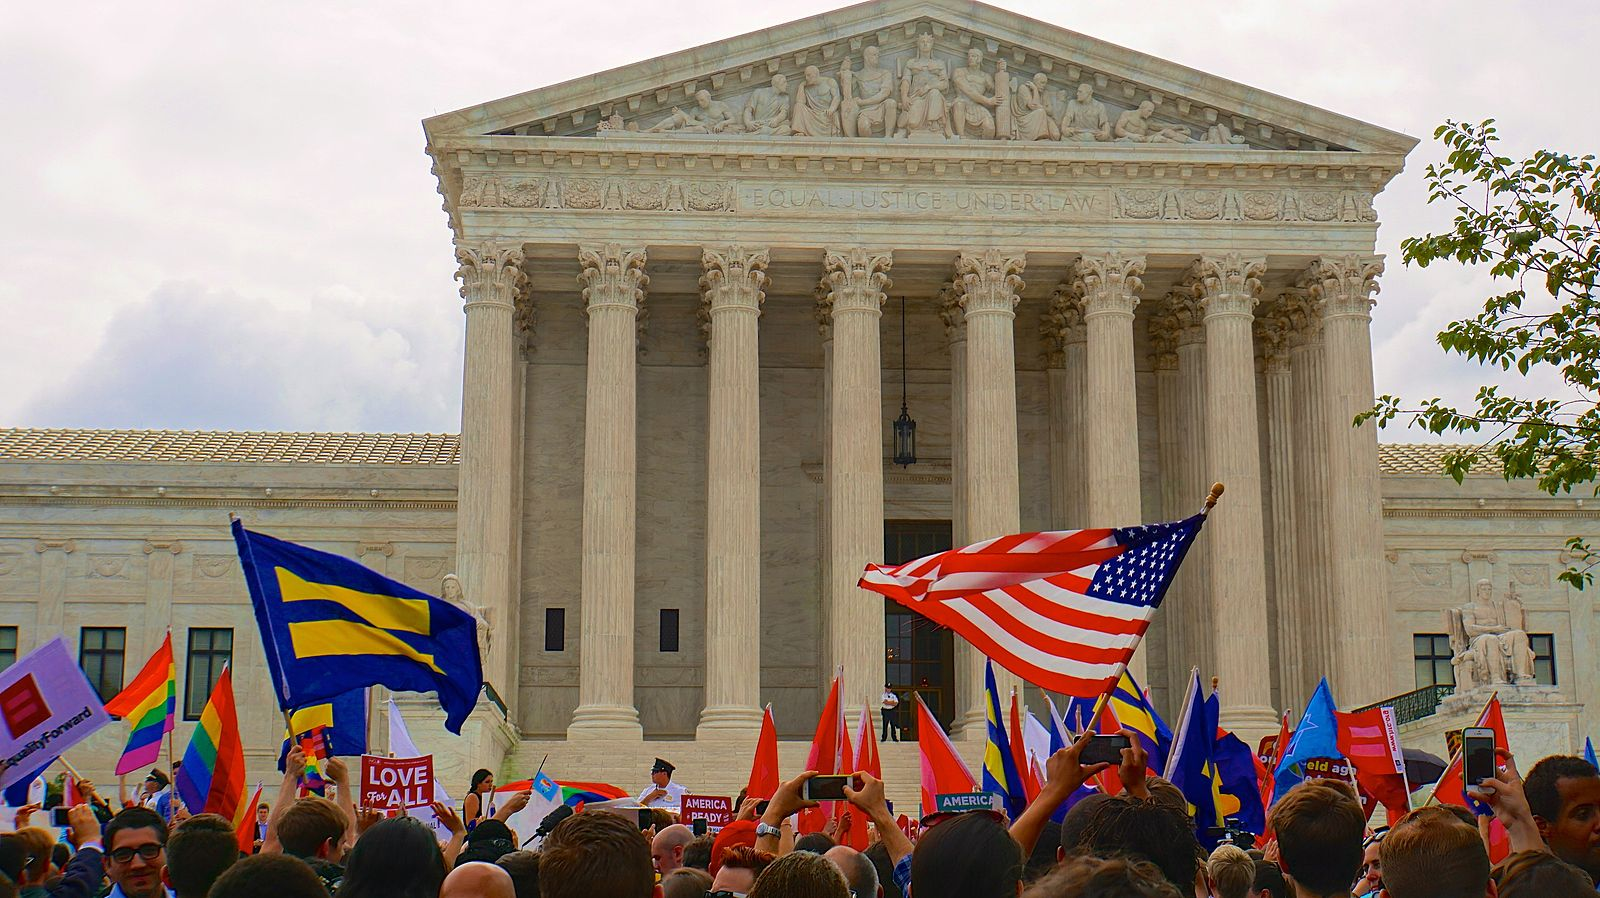 Justices Thomas, Alito criticize same-sex marriage ruling in turning away Kentucky clerk's case